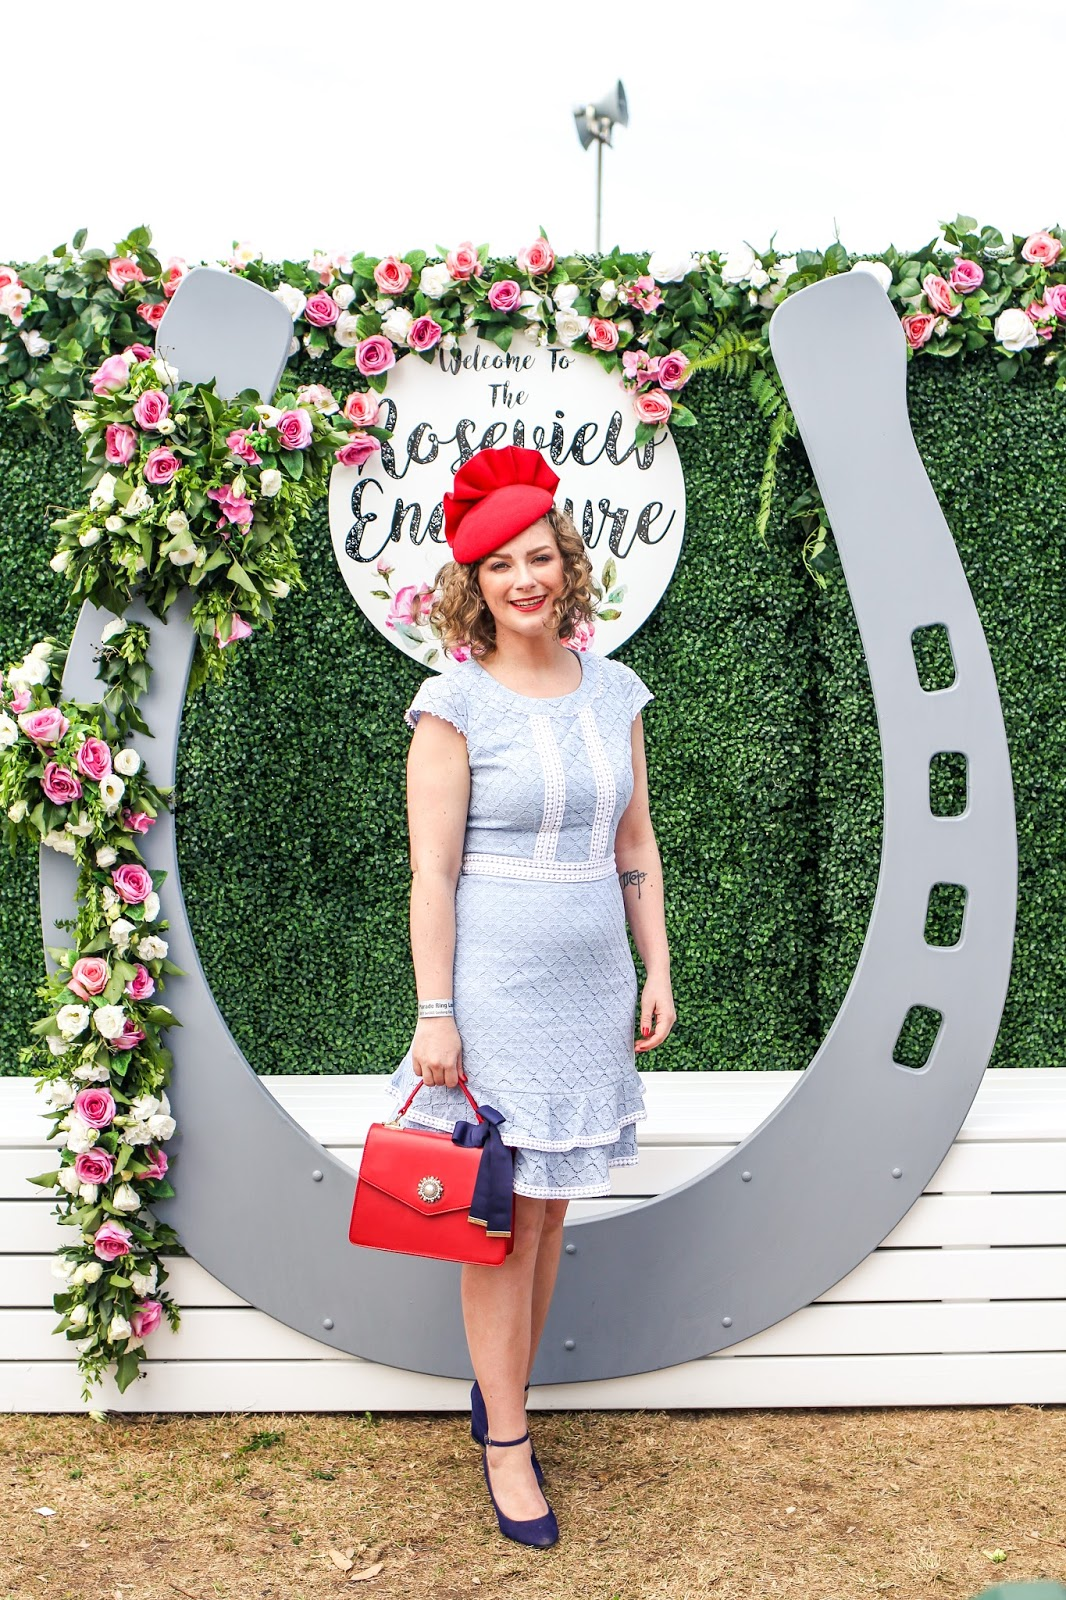 Visit the Goldfields Girl blog for more photos of Geelong Cup Fashions on the Field